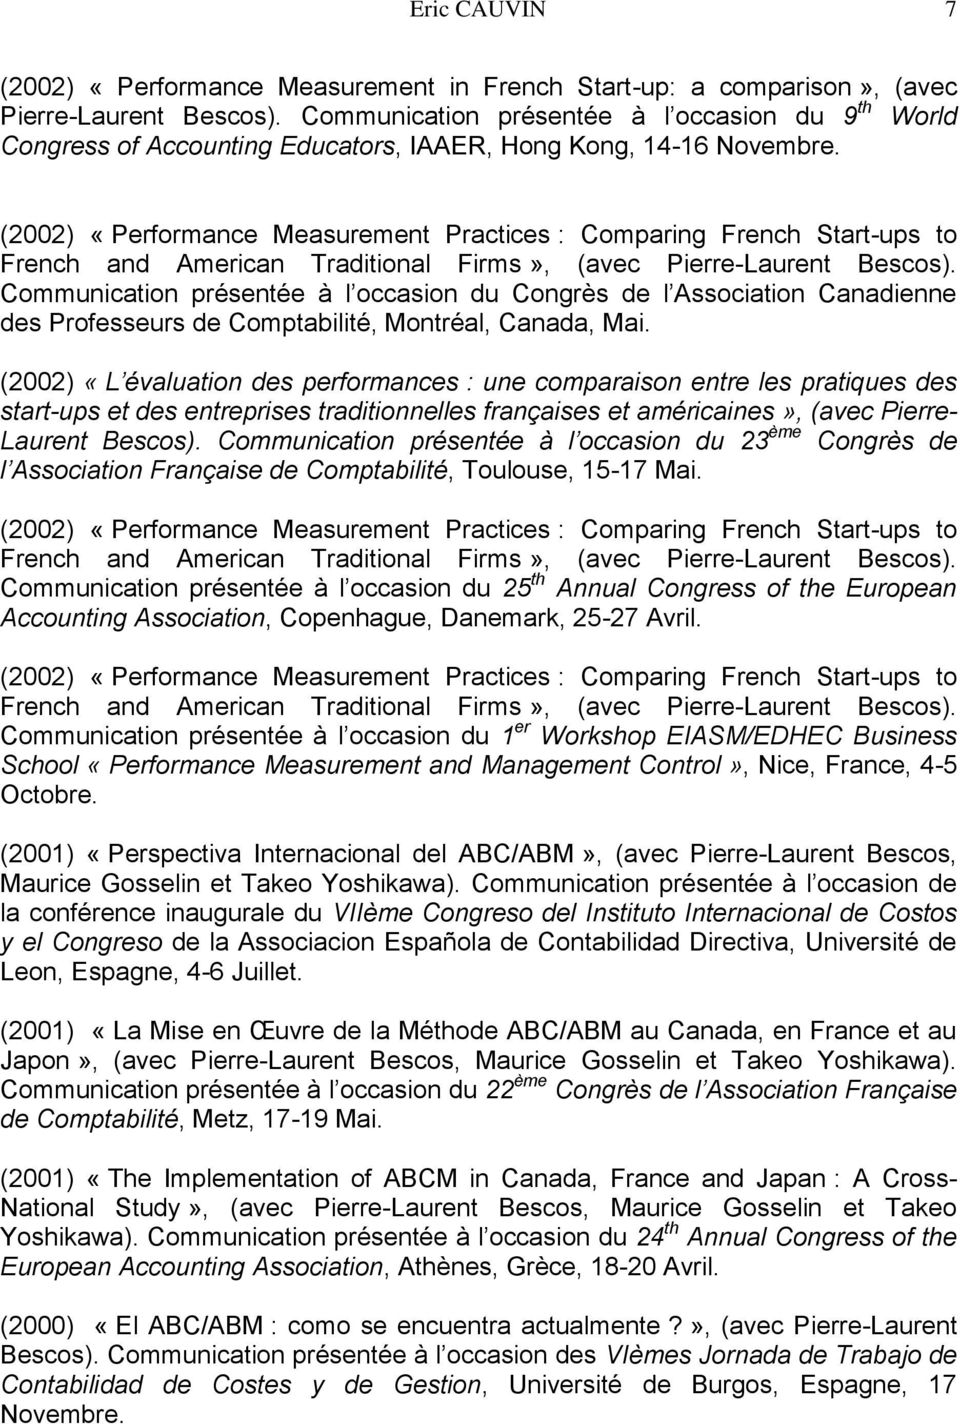 (2002) «Performance Measurement Practices : Comparing French Start-ups to French and American Traditional Firms», (avec Pierre-Laurent Bescos).